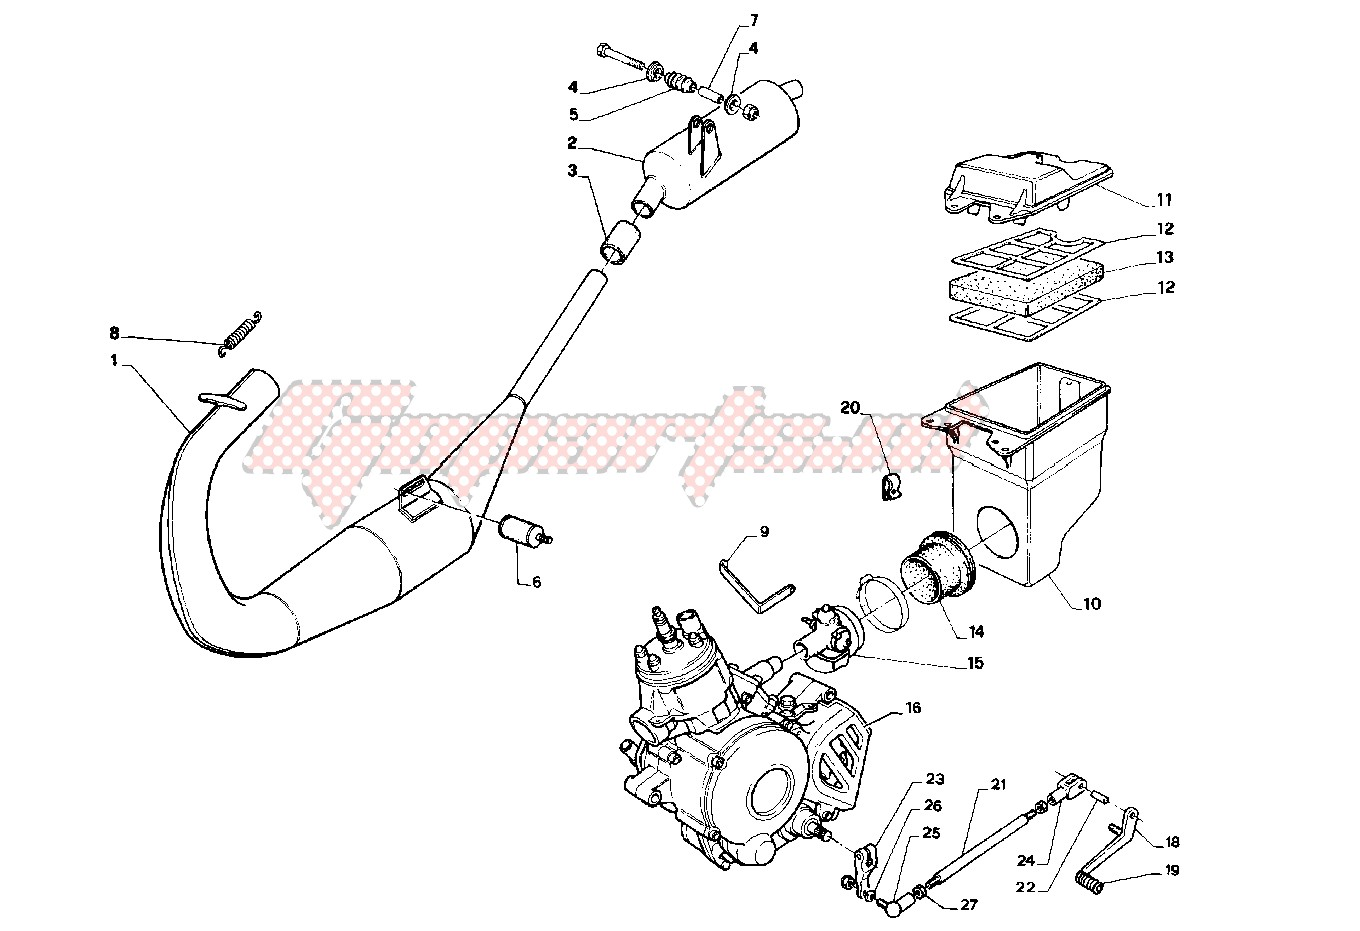 Engine-Exhaust system